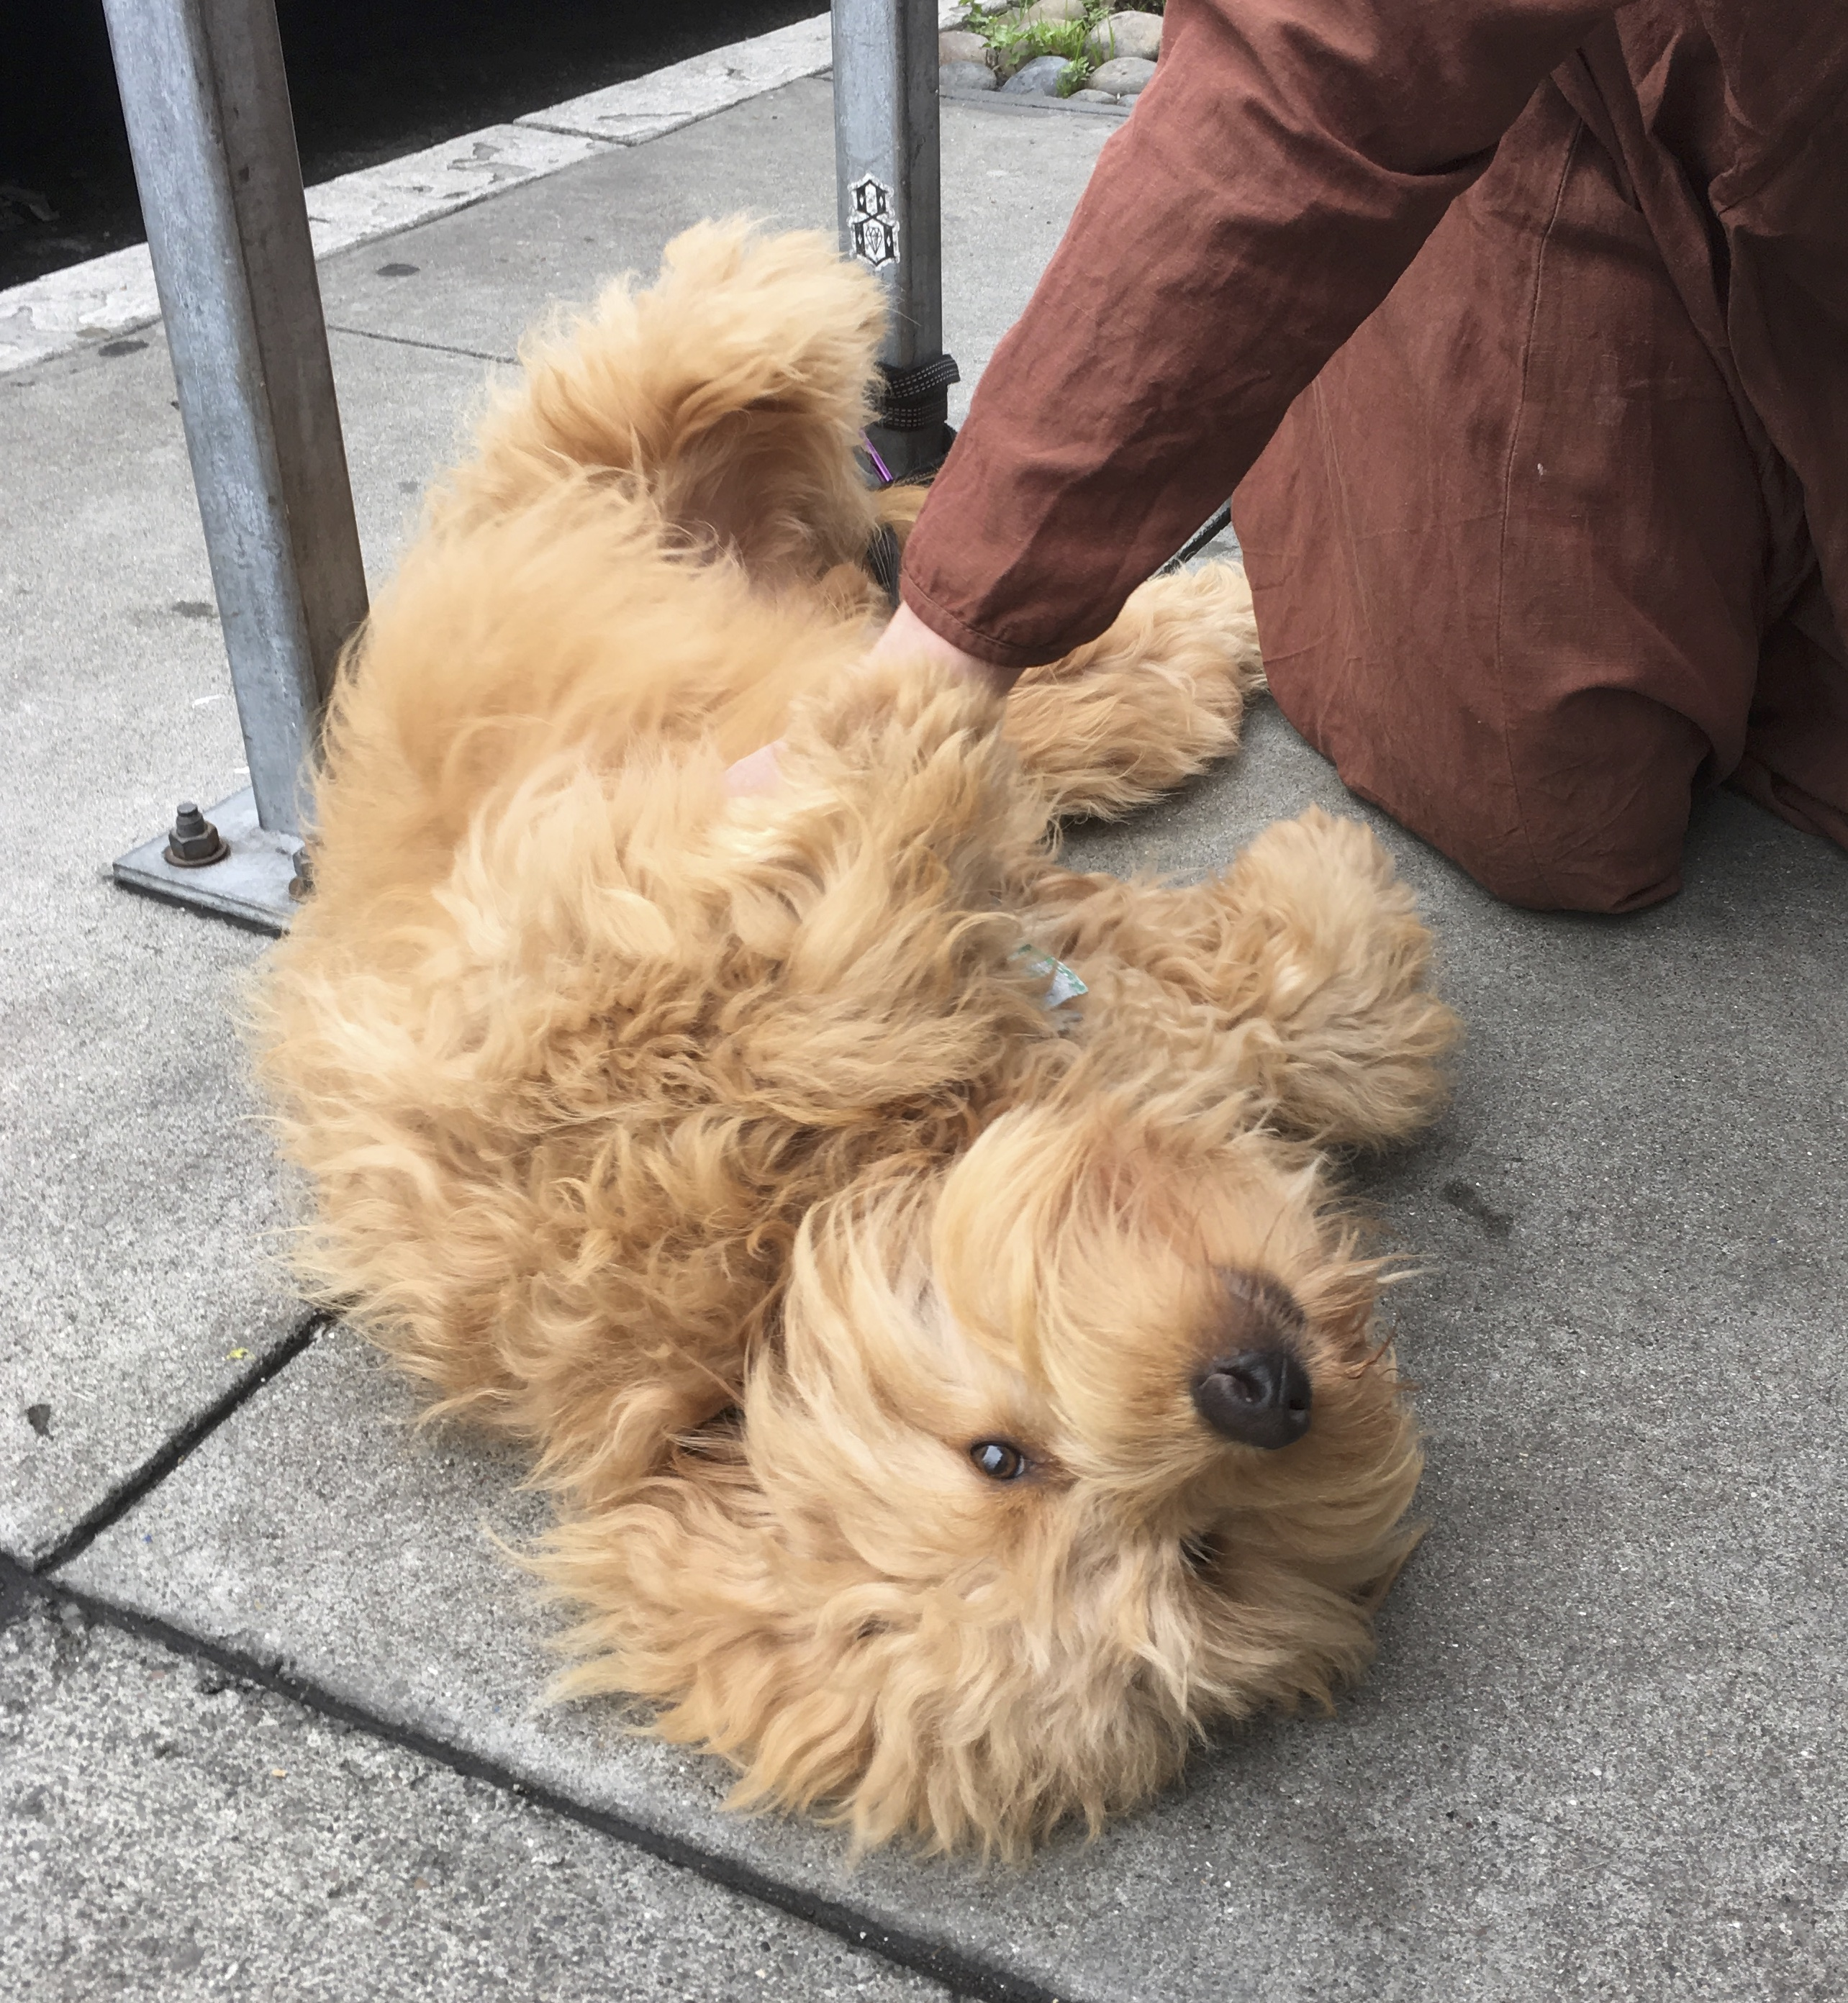 Woman Petting Fluffy Goldendoodle Who Is Lying On His Back On The Sidewalk